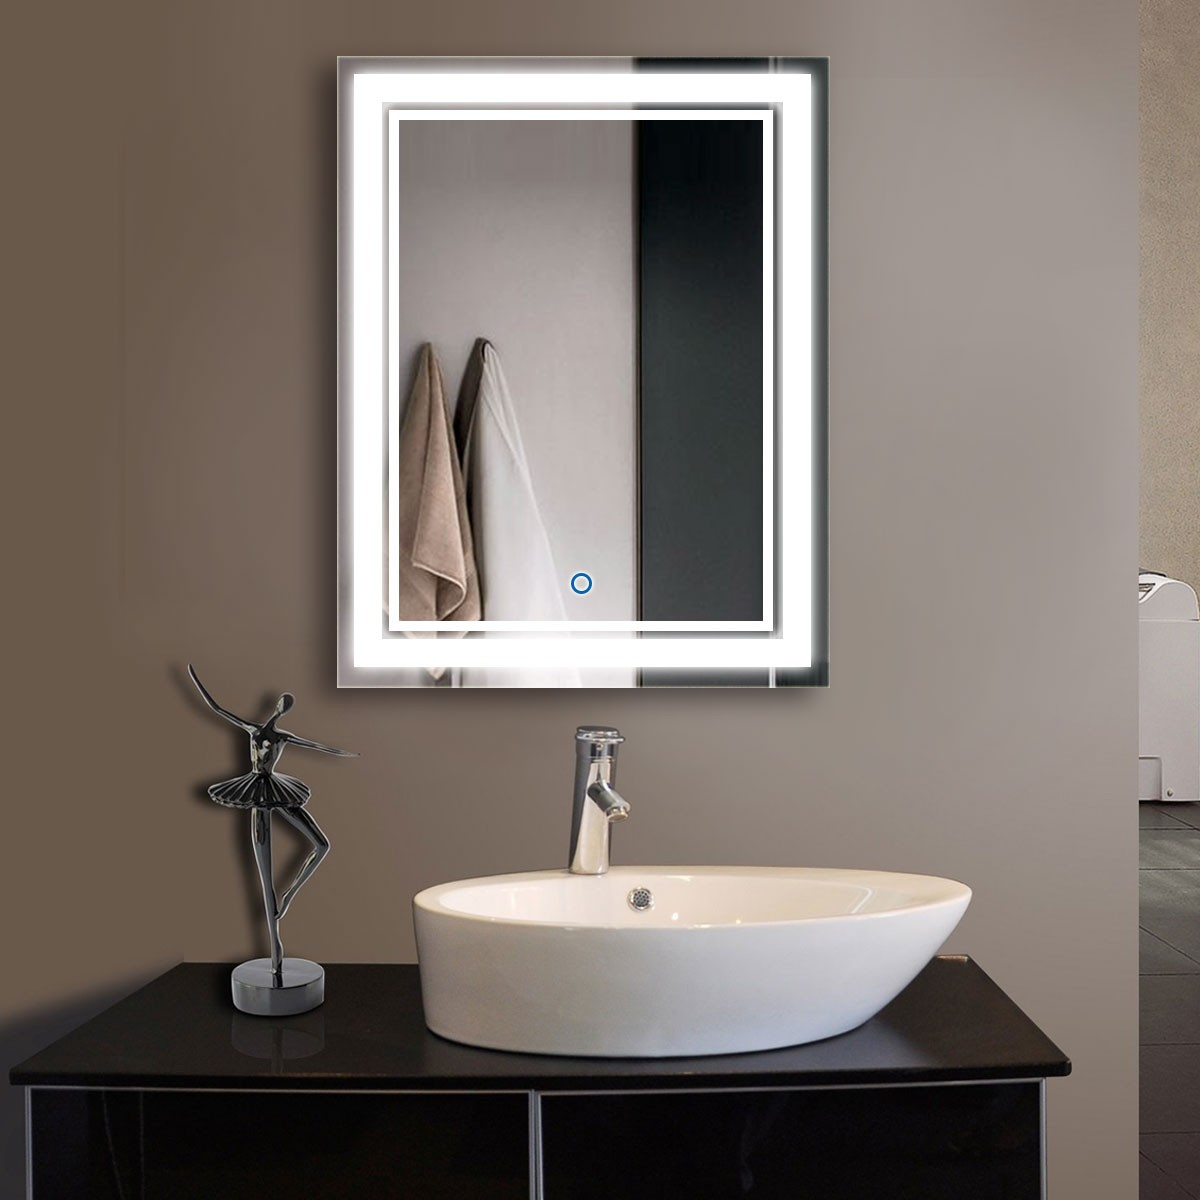 28 x 36 In Vertical LED Mirror, Touch Button (DK-OD-CK160-I)